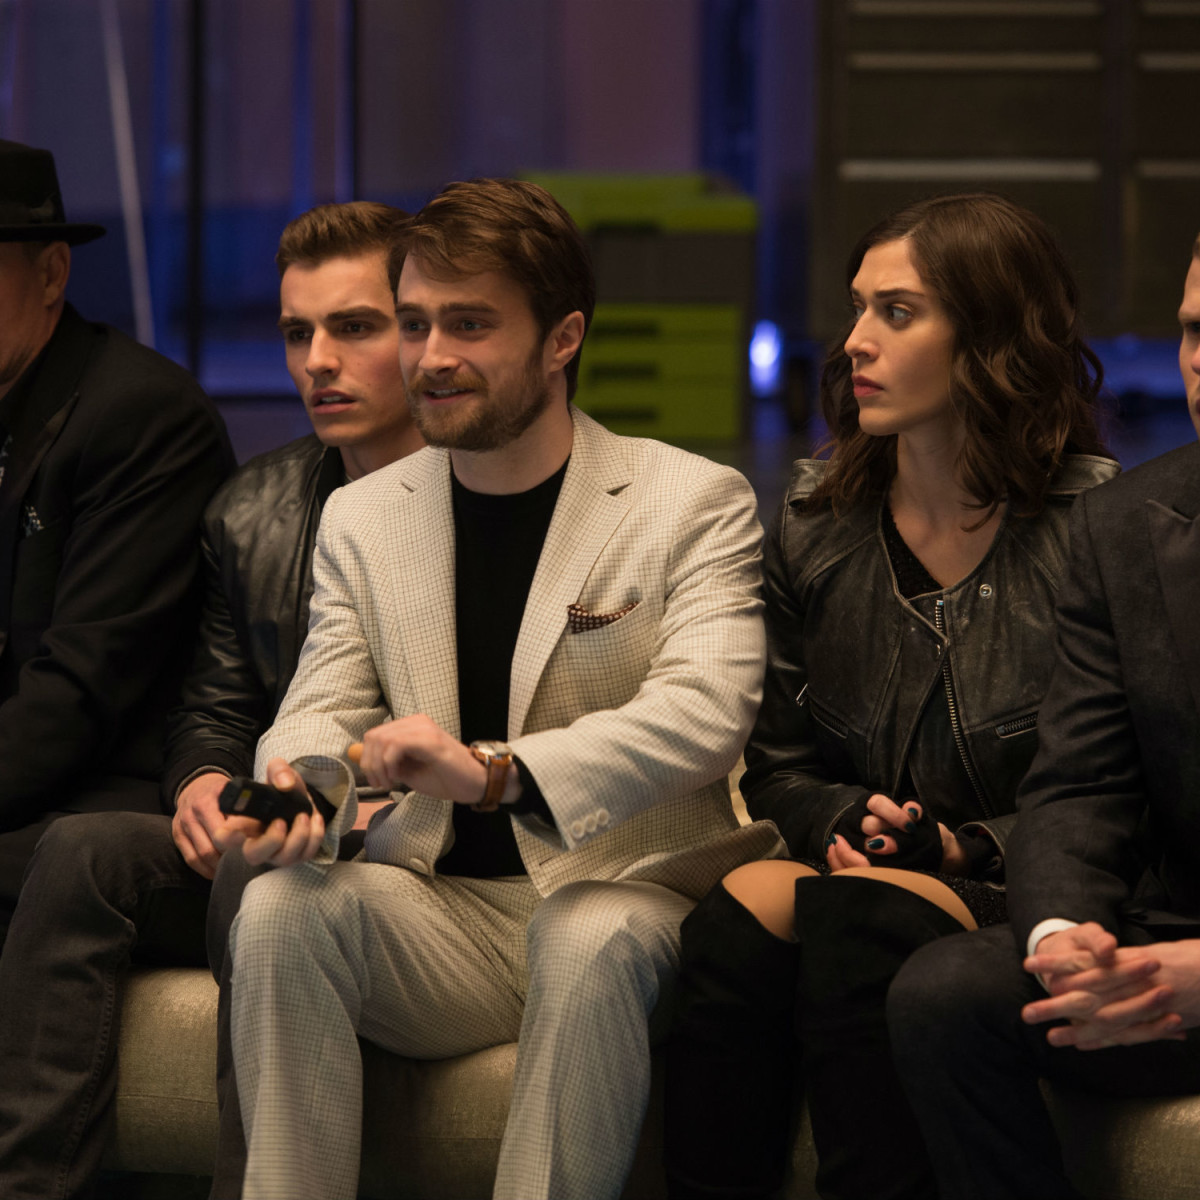 Woody Harrelson, Dave Franco, Daniel Radcliffe, Lizzy Caplan, and Jesse Eisenberg in Now You See Me 2